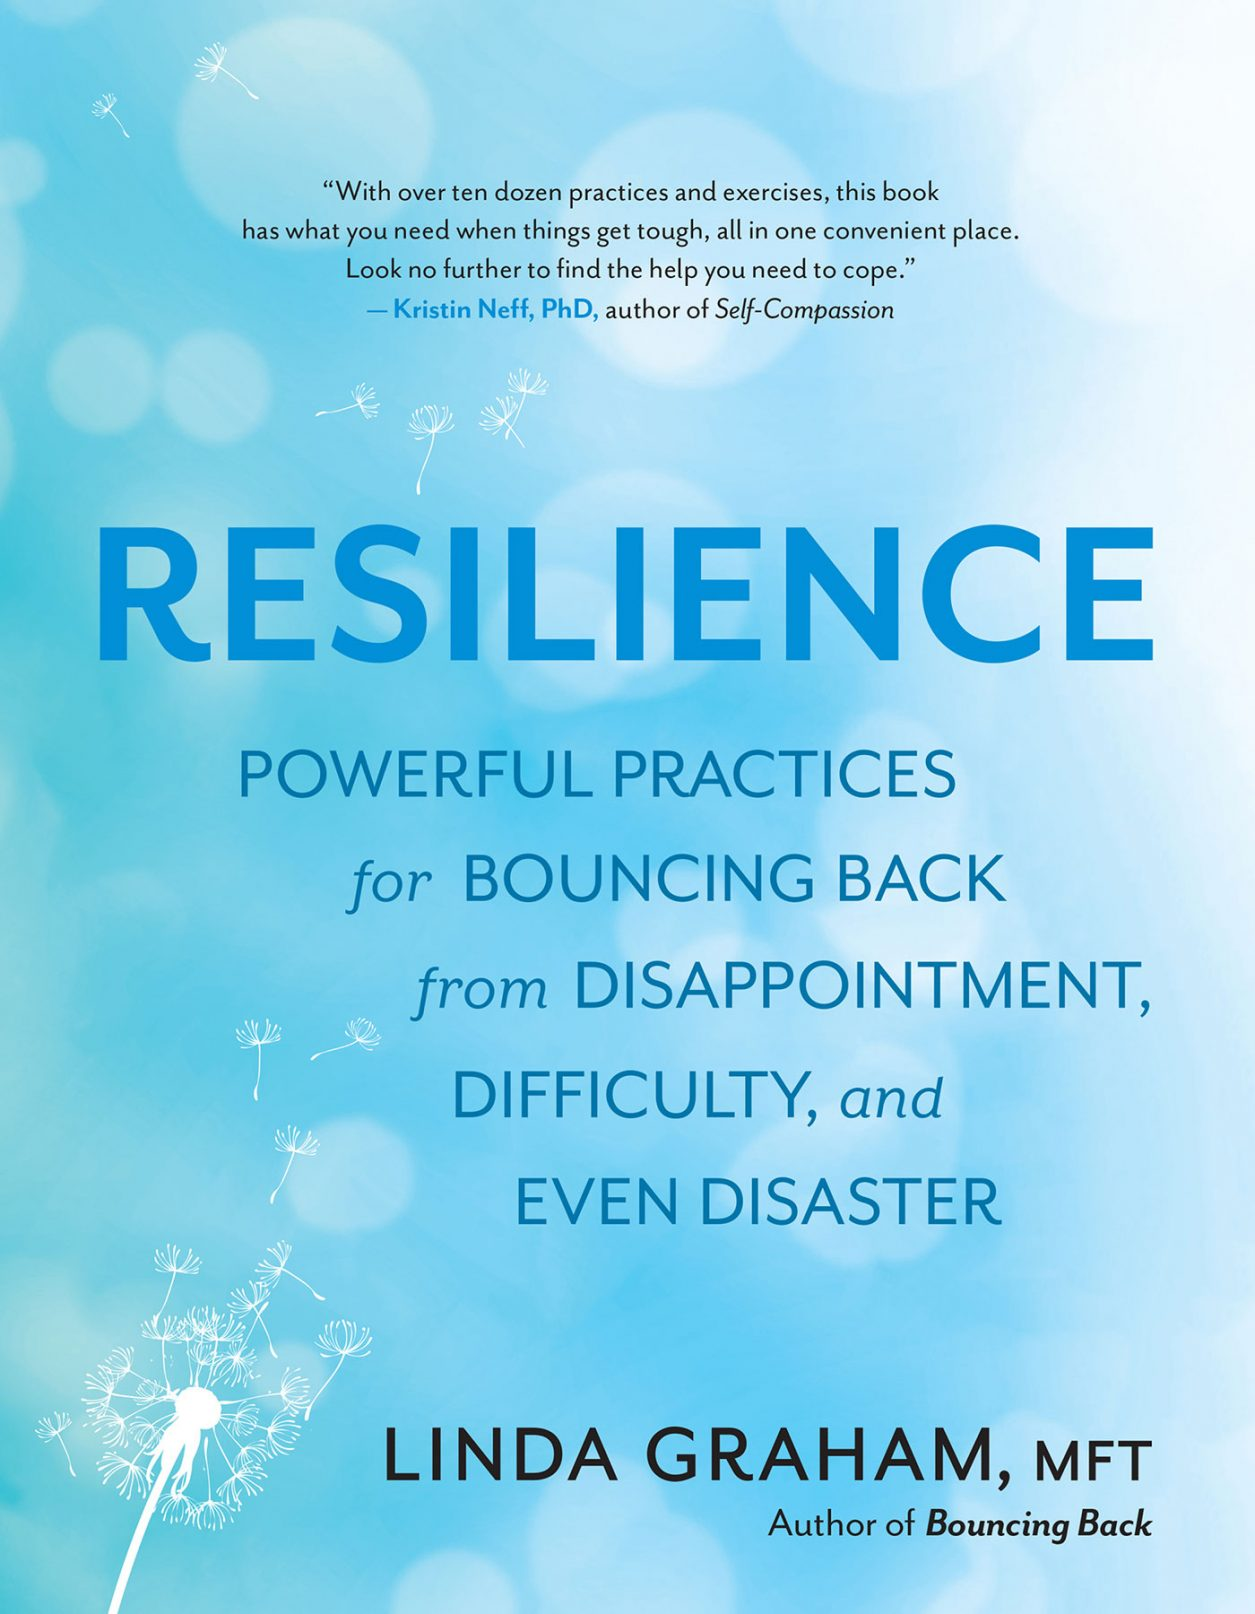 Resilience Powerful Practices for Bouncing Back from Disappointment, Difficulty, and Even Disaster by Linda Graham, MFT